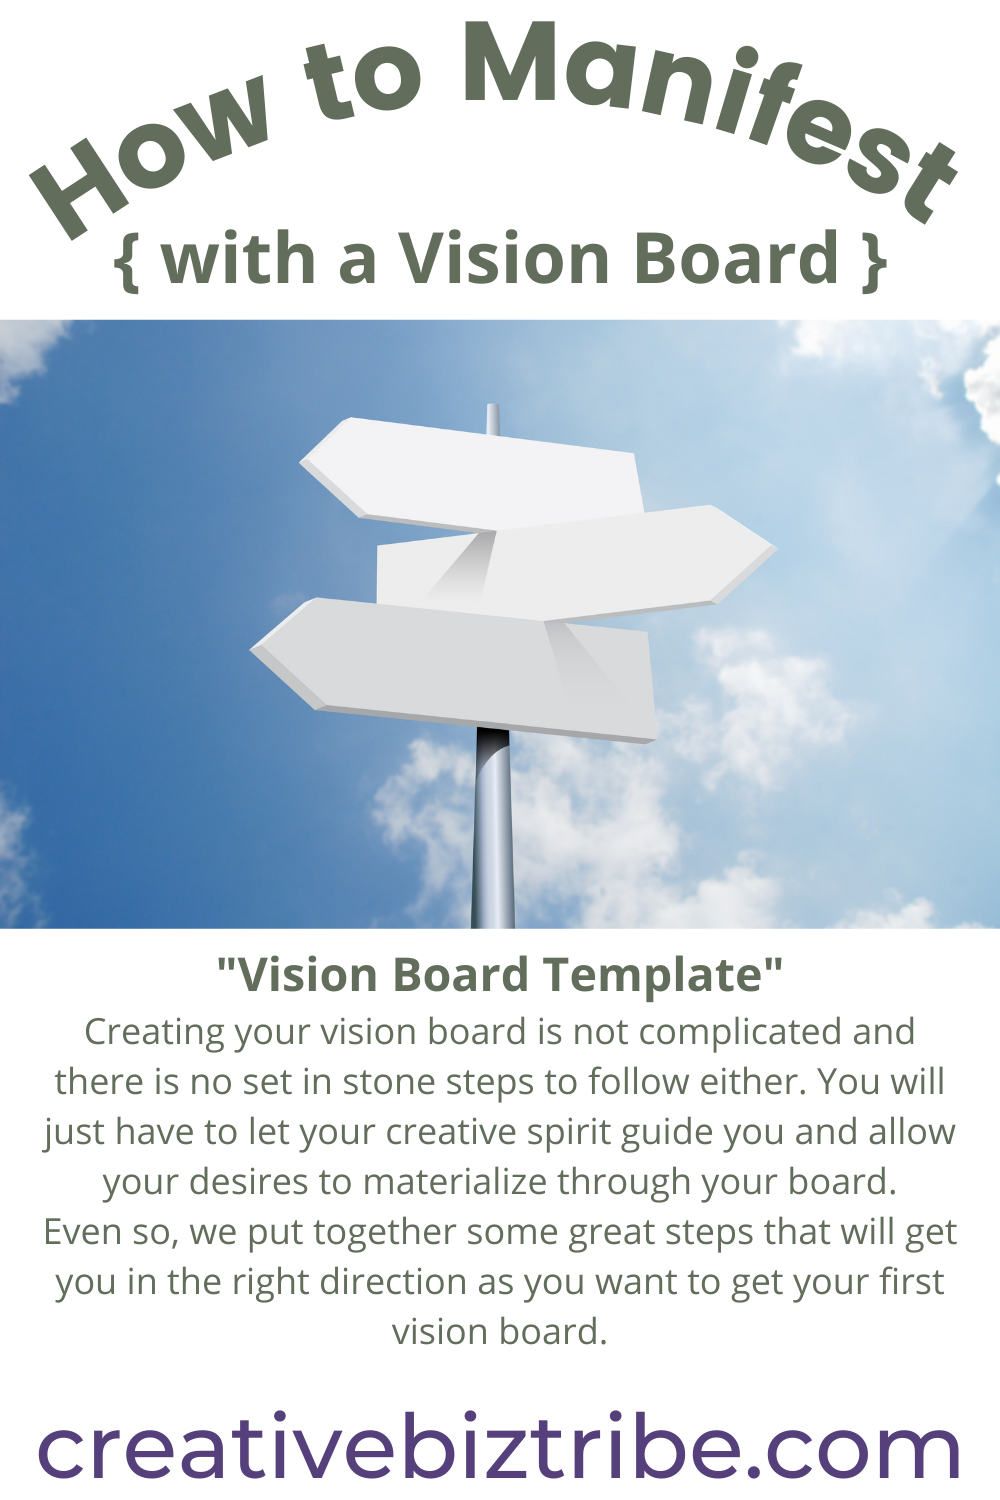 How to Manifest with a Vision Board creativebiztribe.com #manifest #visionboard #visionboards Template